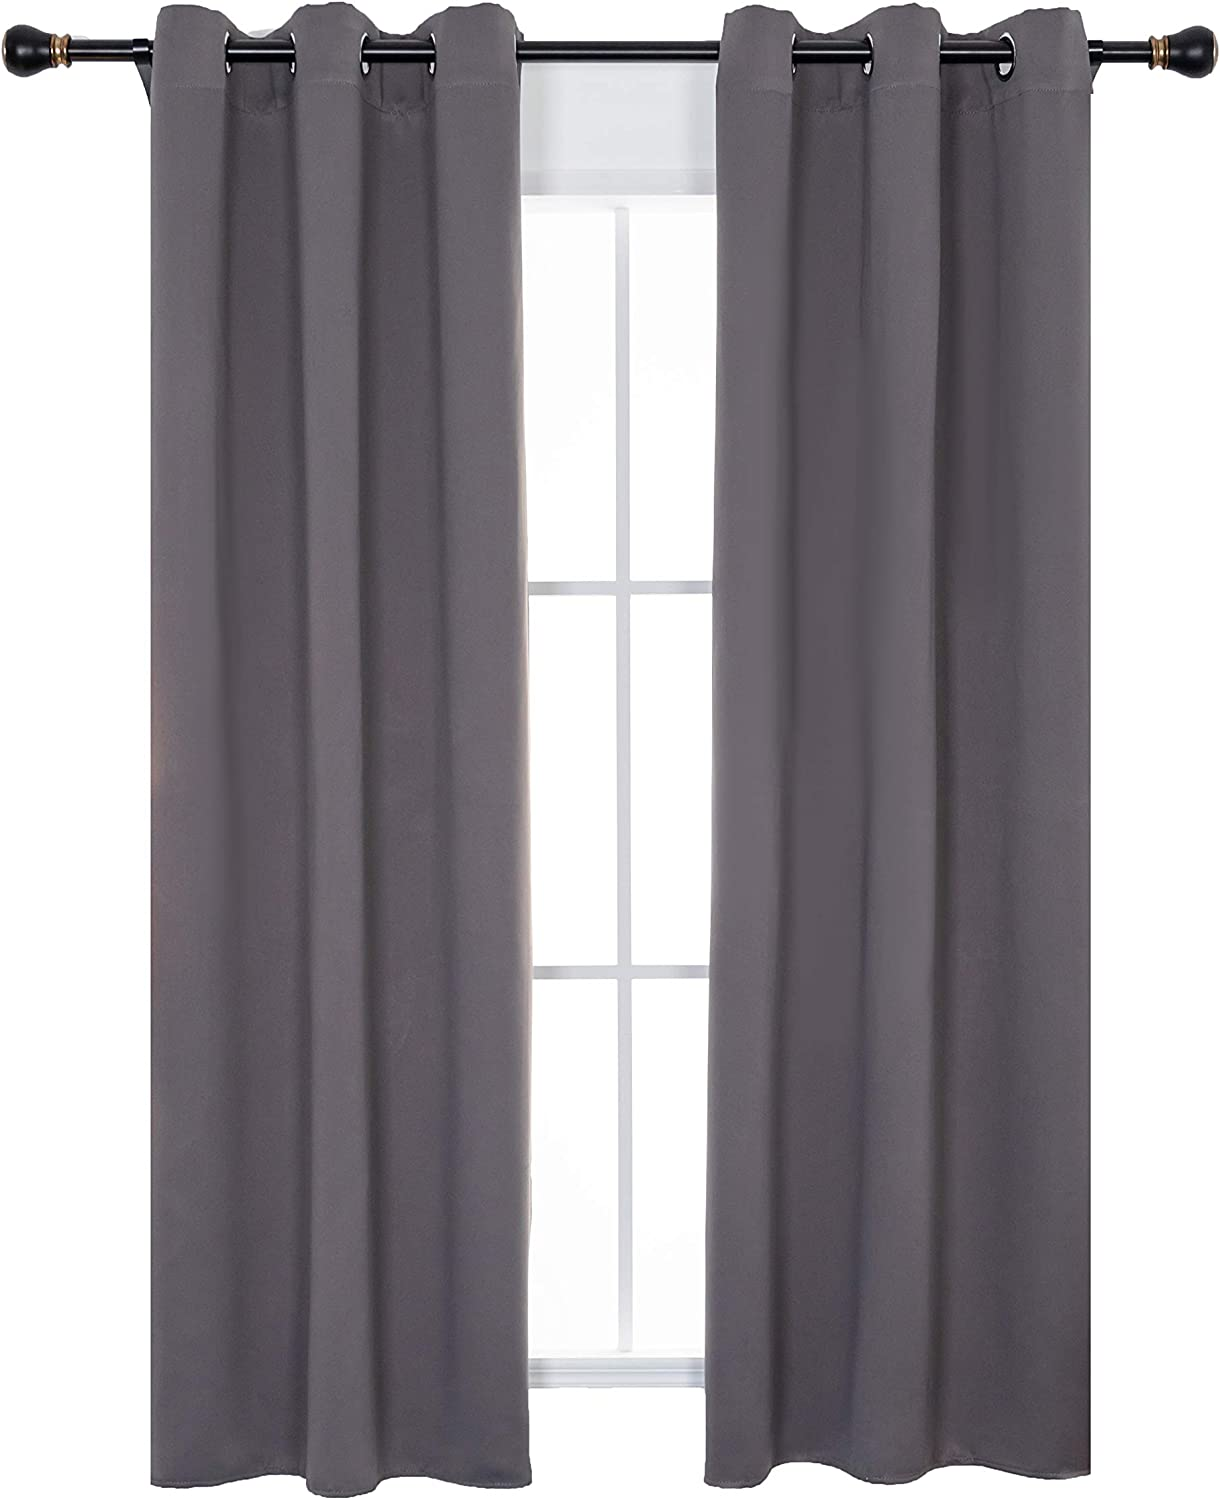 Bedroom Blackout Curtains - Grey Window Treatments Home Decoration Curtains Light Blocking Solid Drapes for Living Room, Pack of 2 Panels, 42x54-Inch, Gray